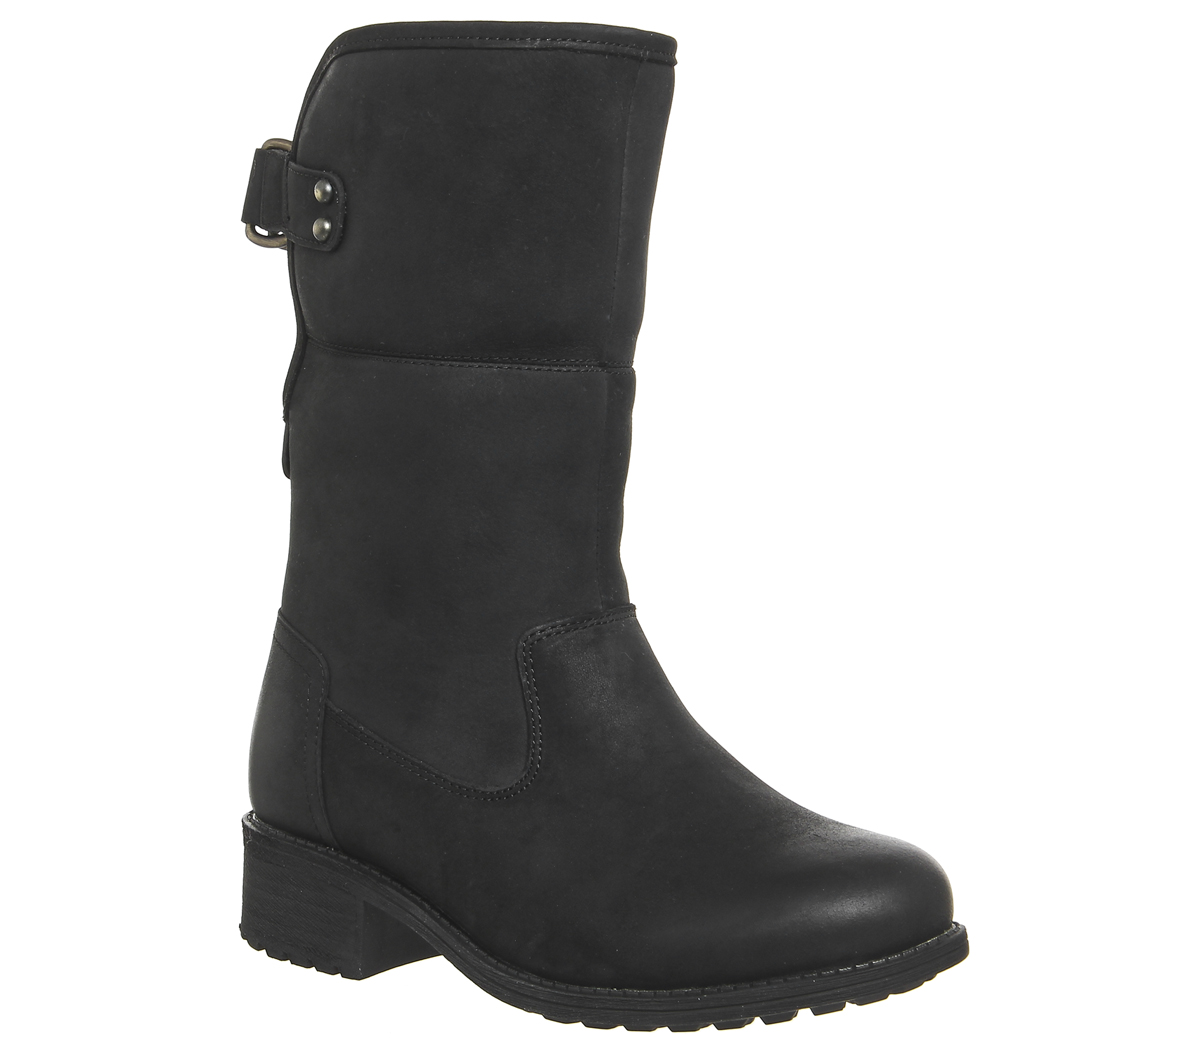 679e322e719 Score These Convertible Ugg Boots and More on Major Sale